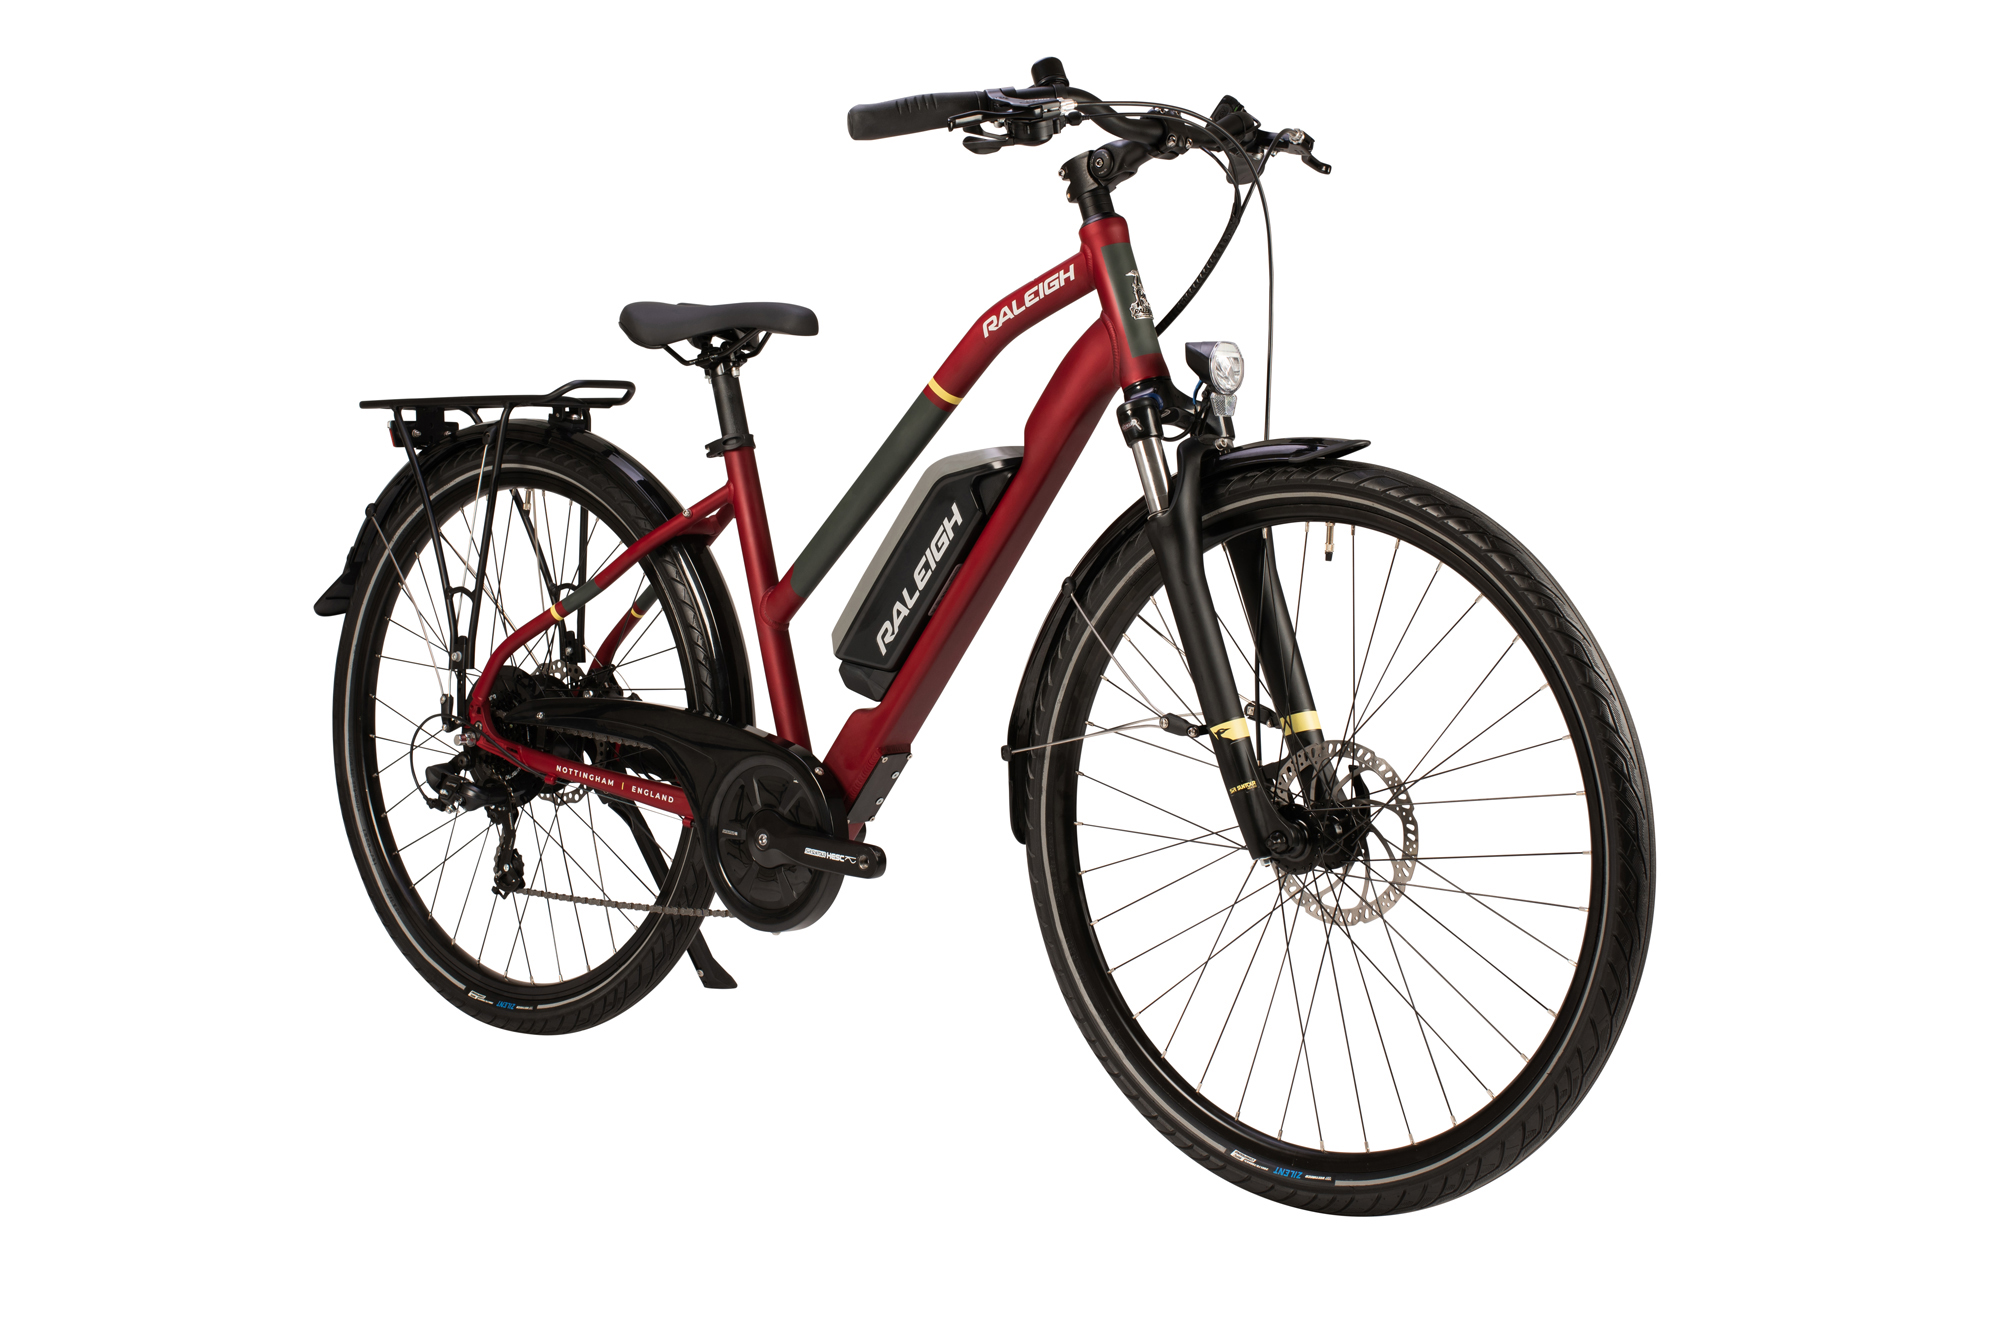 Front view of the Raleigh Array open frame electric bike